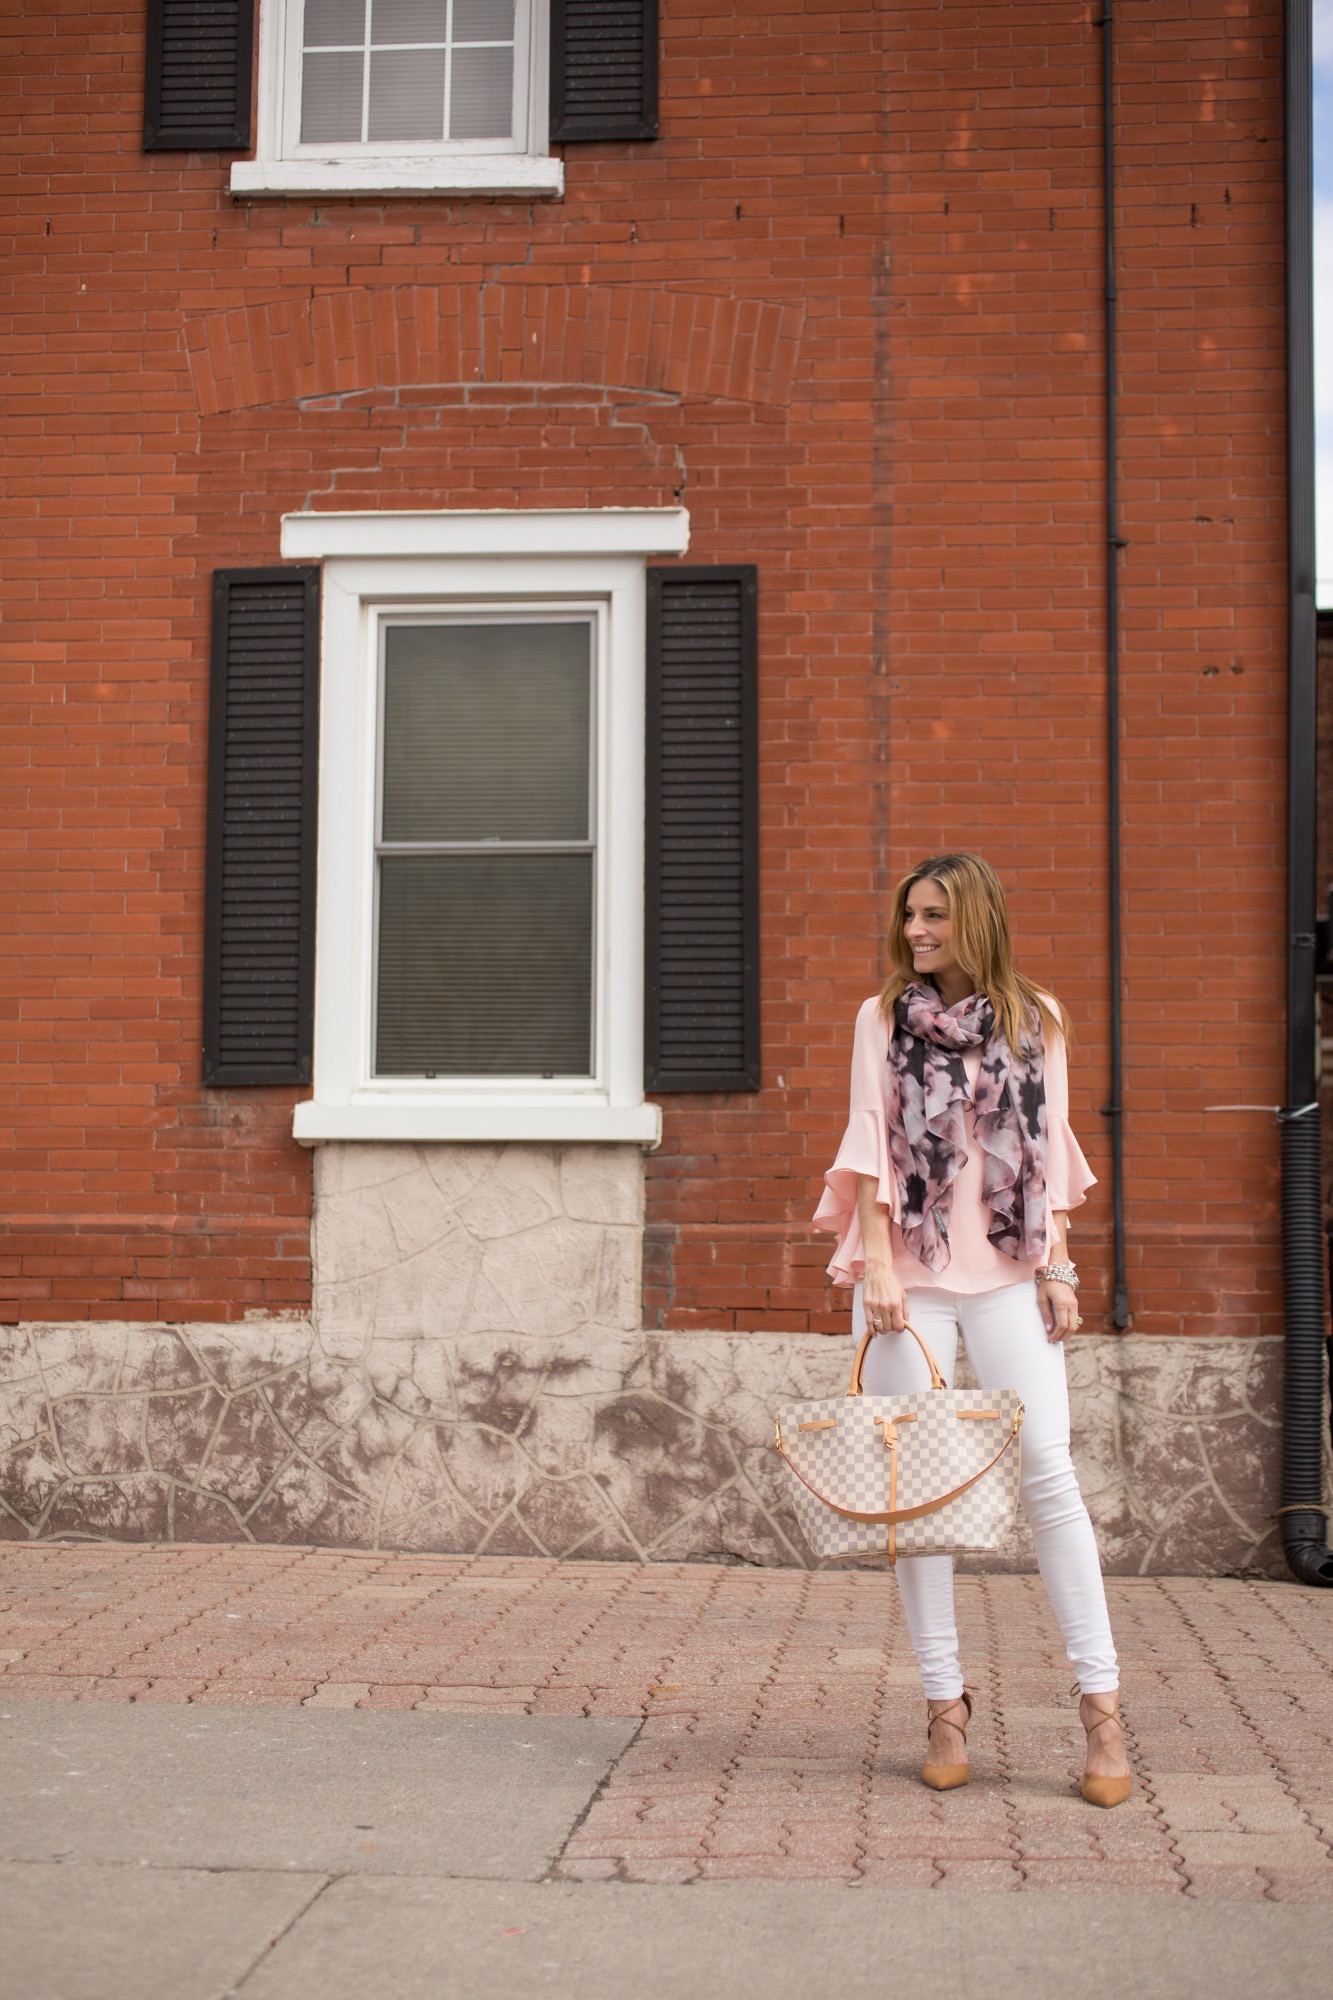 Sparkleshinylove Pink bell sleeve top Suzy Shier, multicolour scarf Suzy shier, White Jeans Suzy Shier, Louis Vuitton Girolata Bag, lace up pointed toe heels in nude Le Chateau